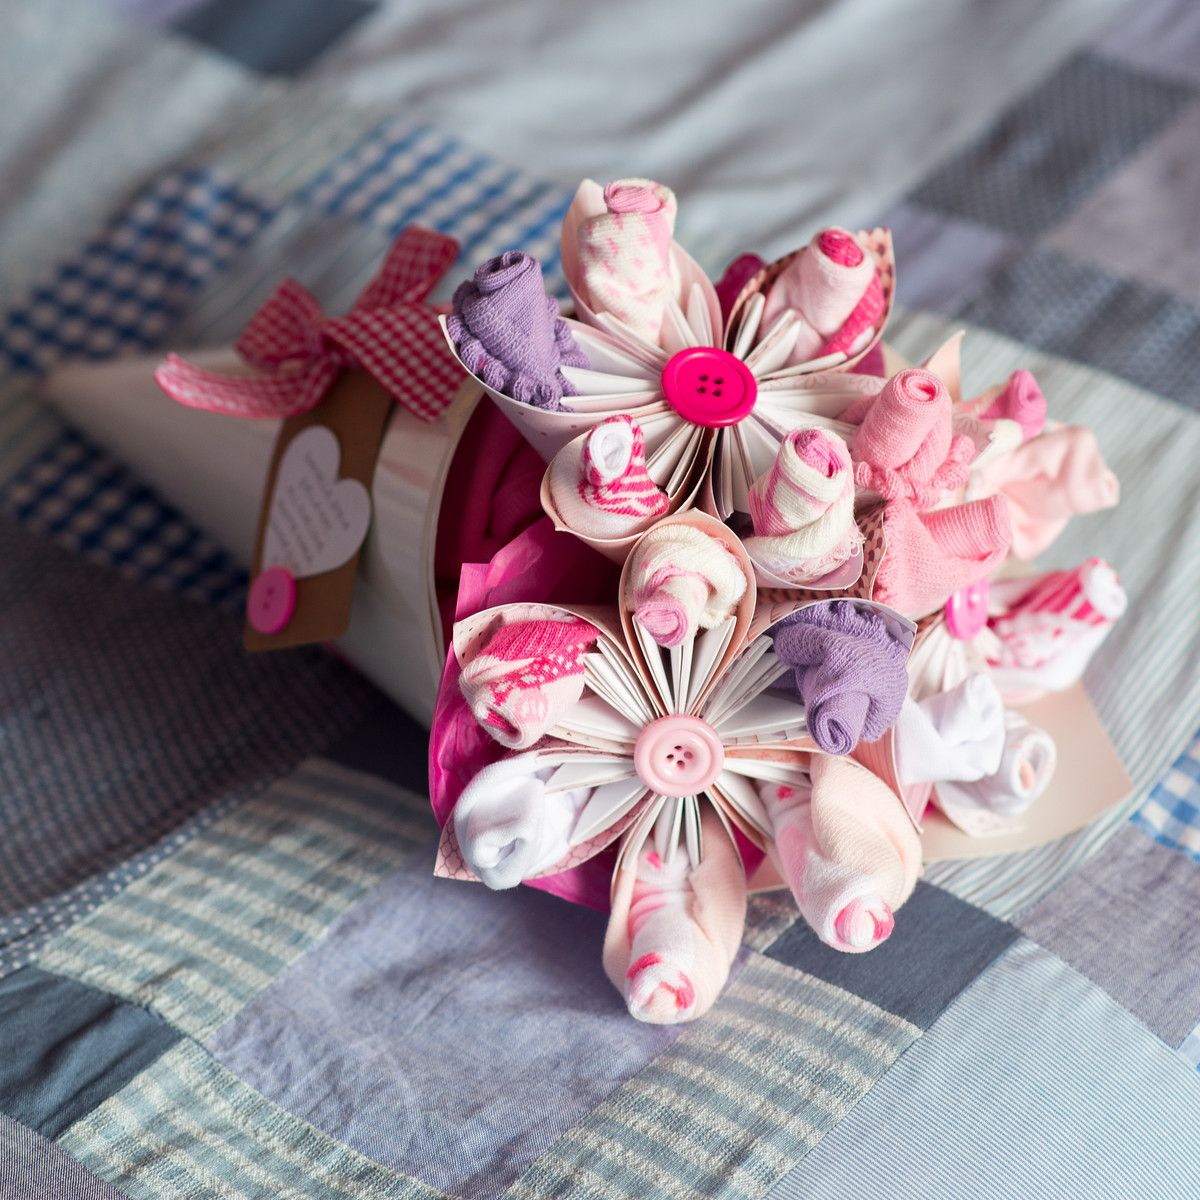 Pretty in pink newborn baby bouquet made from origami paper flowers pretty in pink newborn baby bouquet made from origami paper flowers and filled with socks and izmirmasajfo